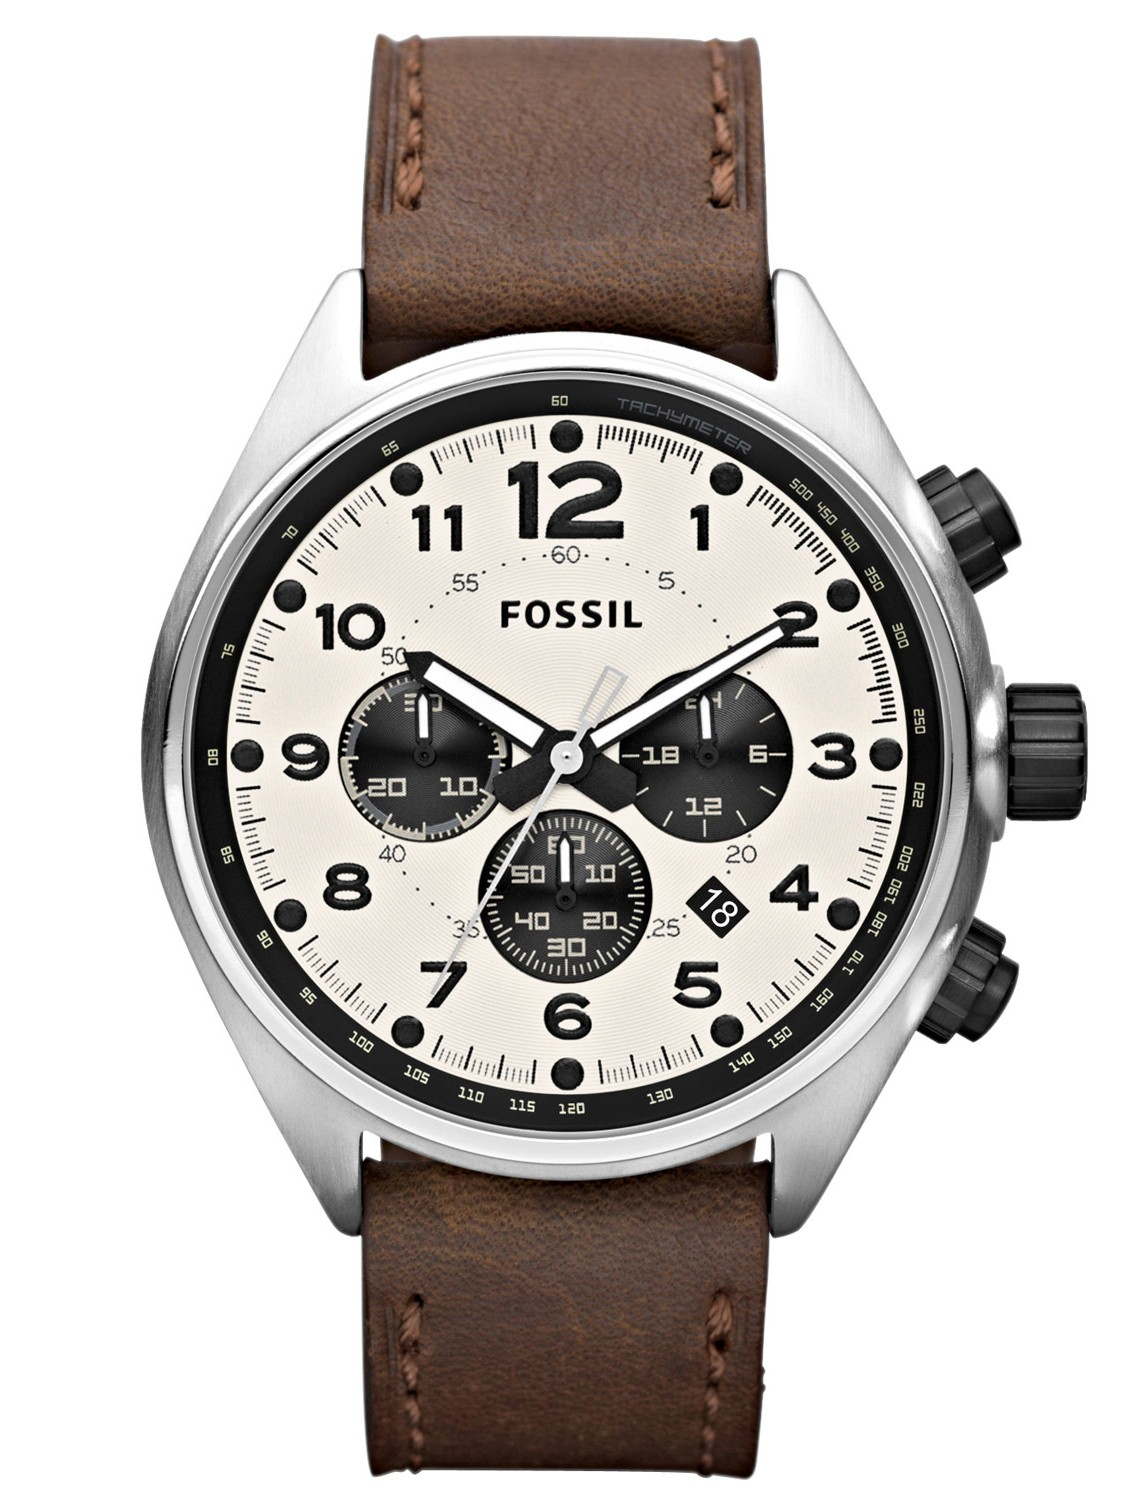 Fossil FS4543 Gents Watches at Best Price - Watchkart.com